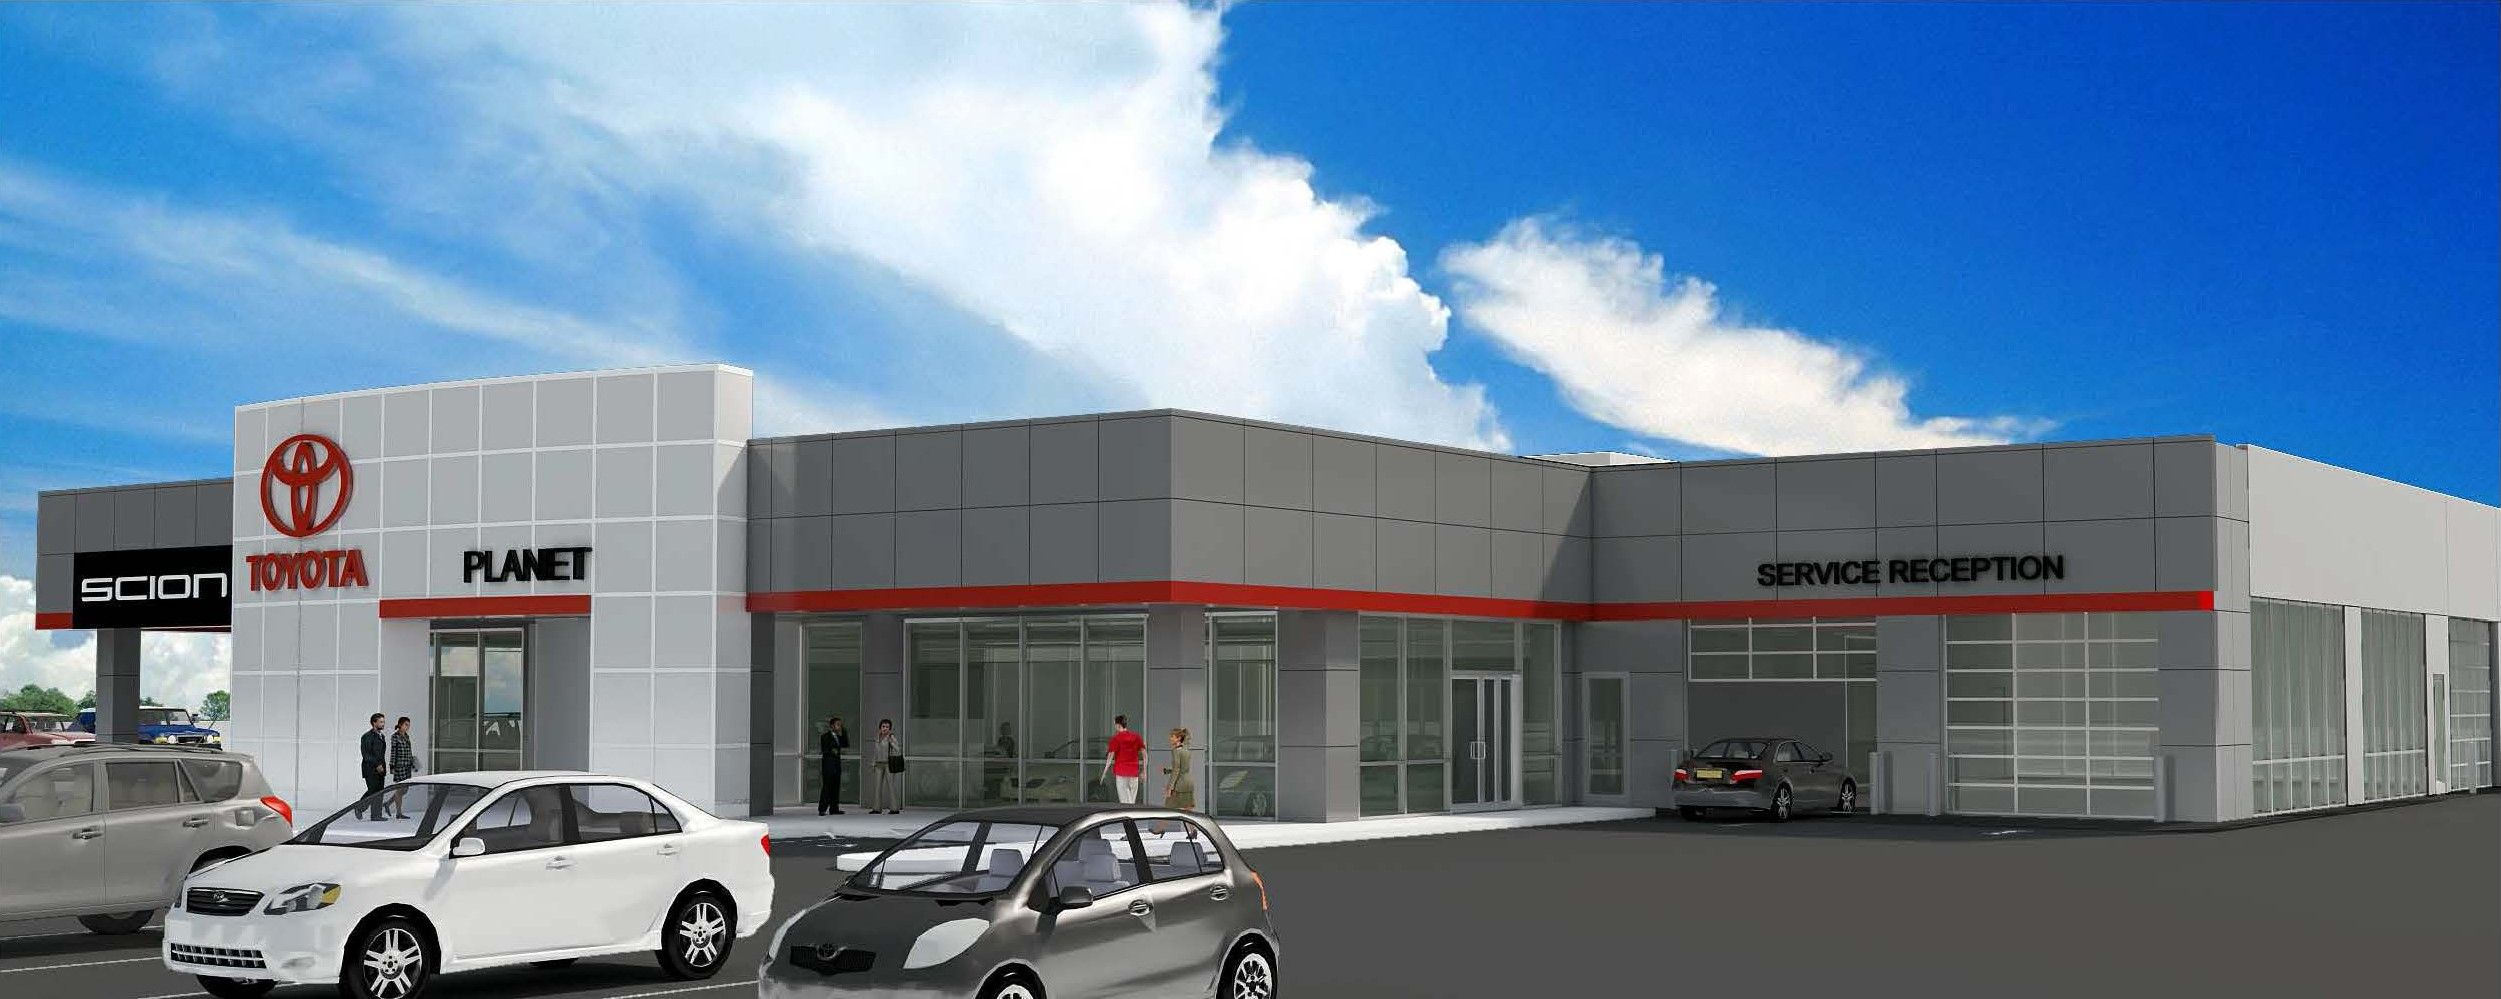 Zeigler Nissan Gurnee >> Zeigler Nissan - Gurnee, IL LG Services: -36,000 SF New ...